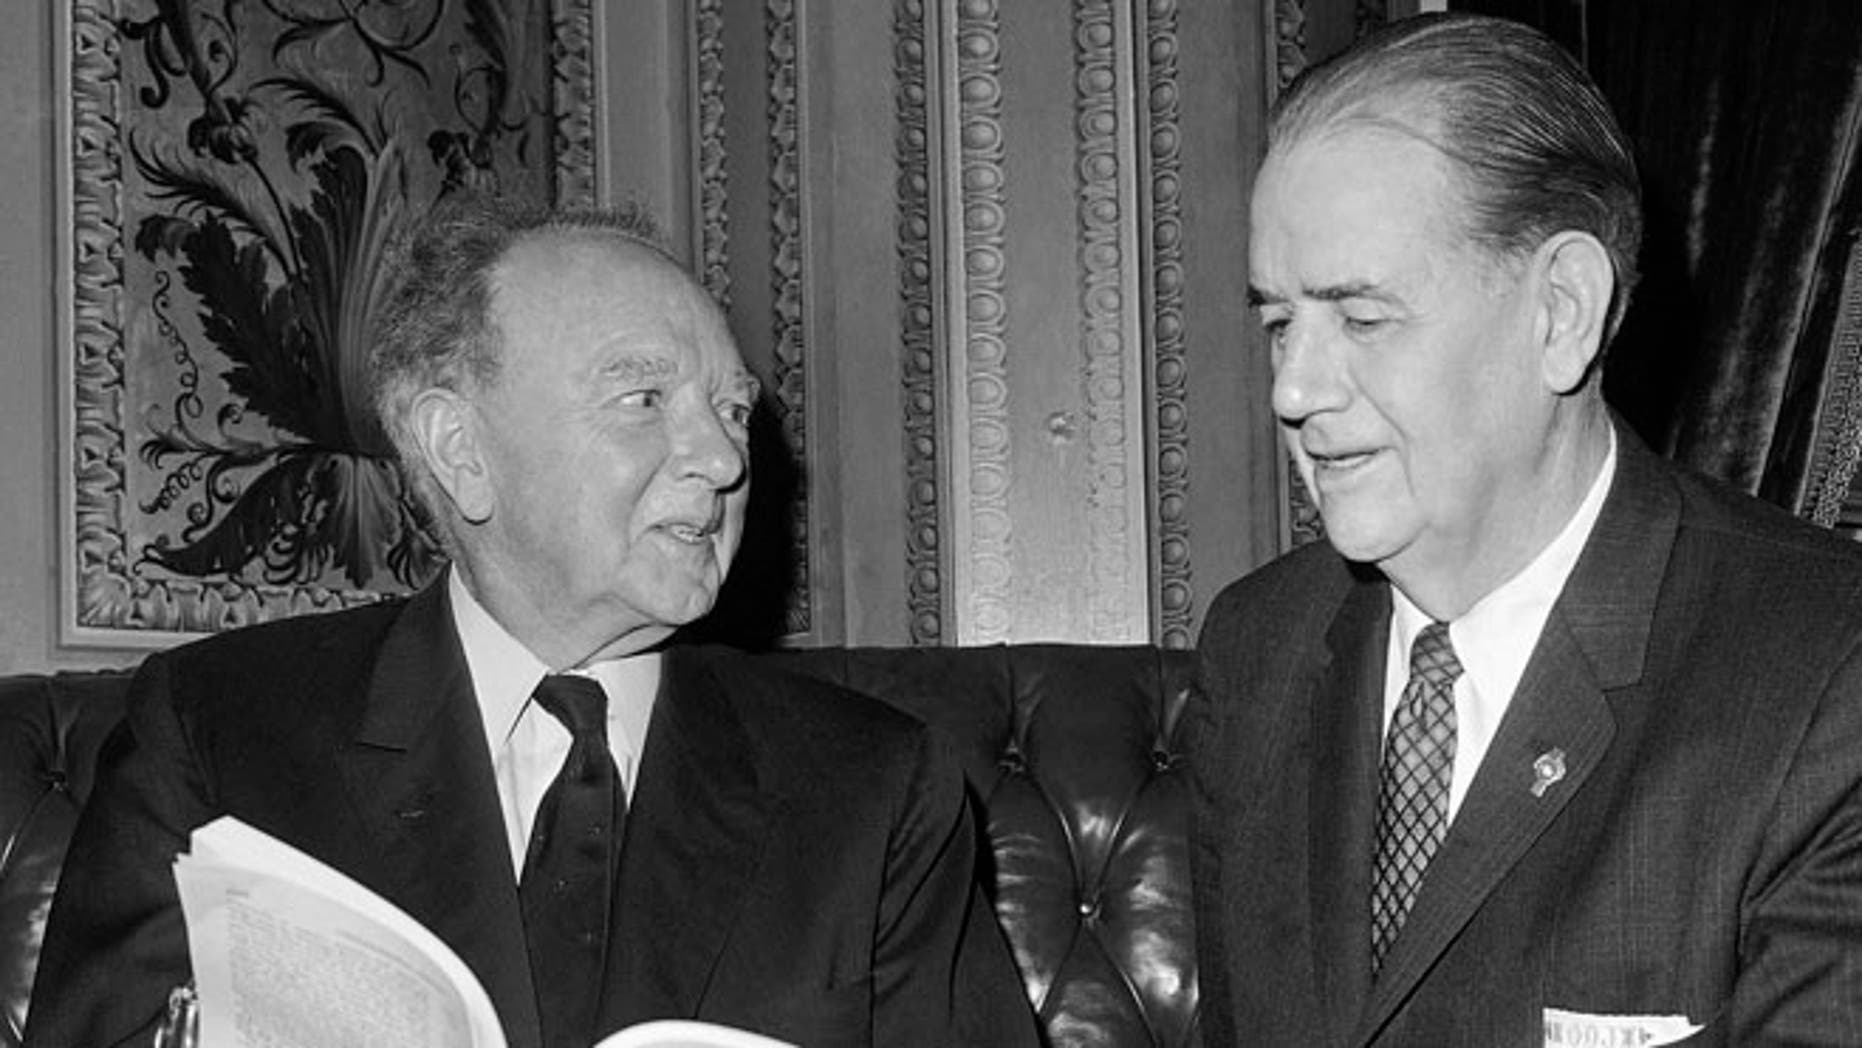 Sen. Harry F. Byrd, D-Va.,left,  and Sen. Olin Johnston, D-S.C. in a Senate cloak room on Capitol Hill in Washington as the debate on the House-passed civil rights bill moved into its 31st day. April 15, 1964.